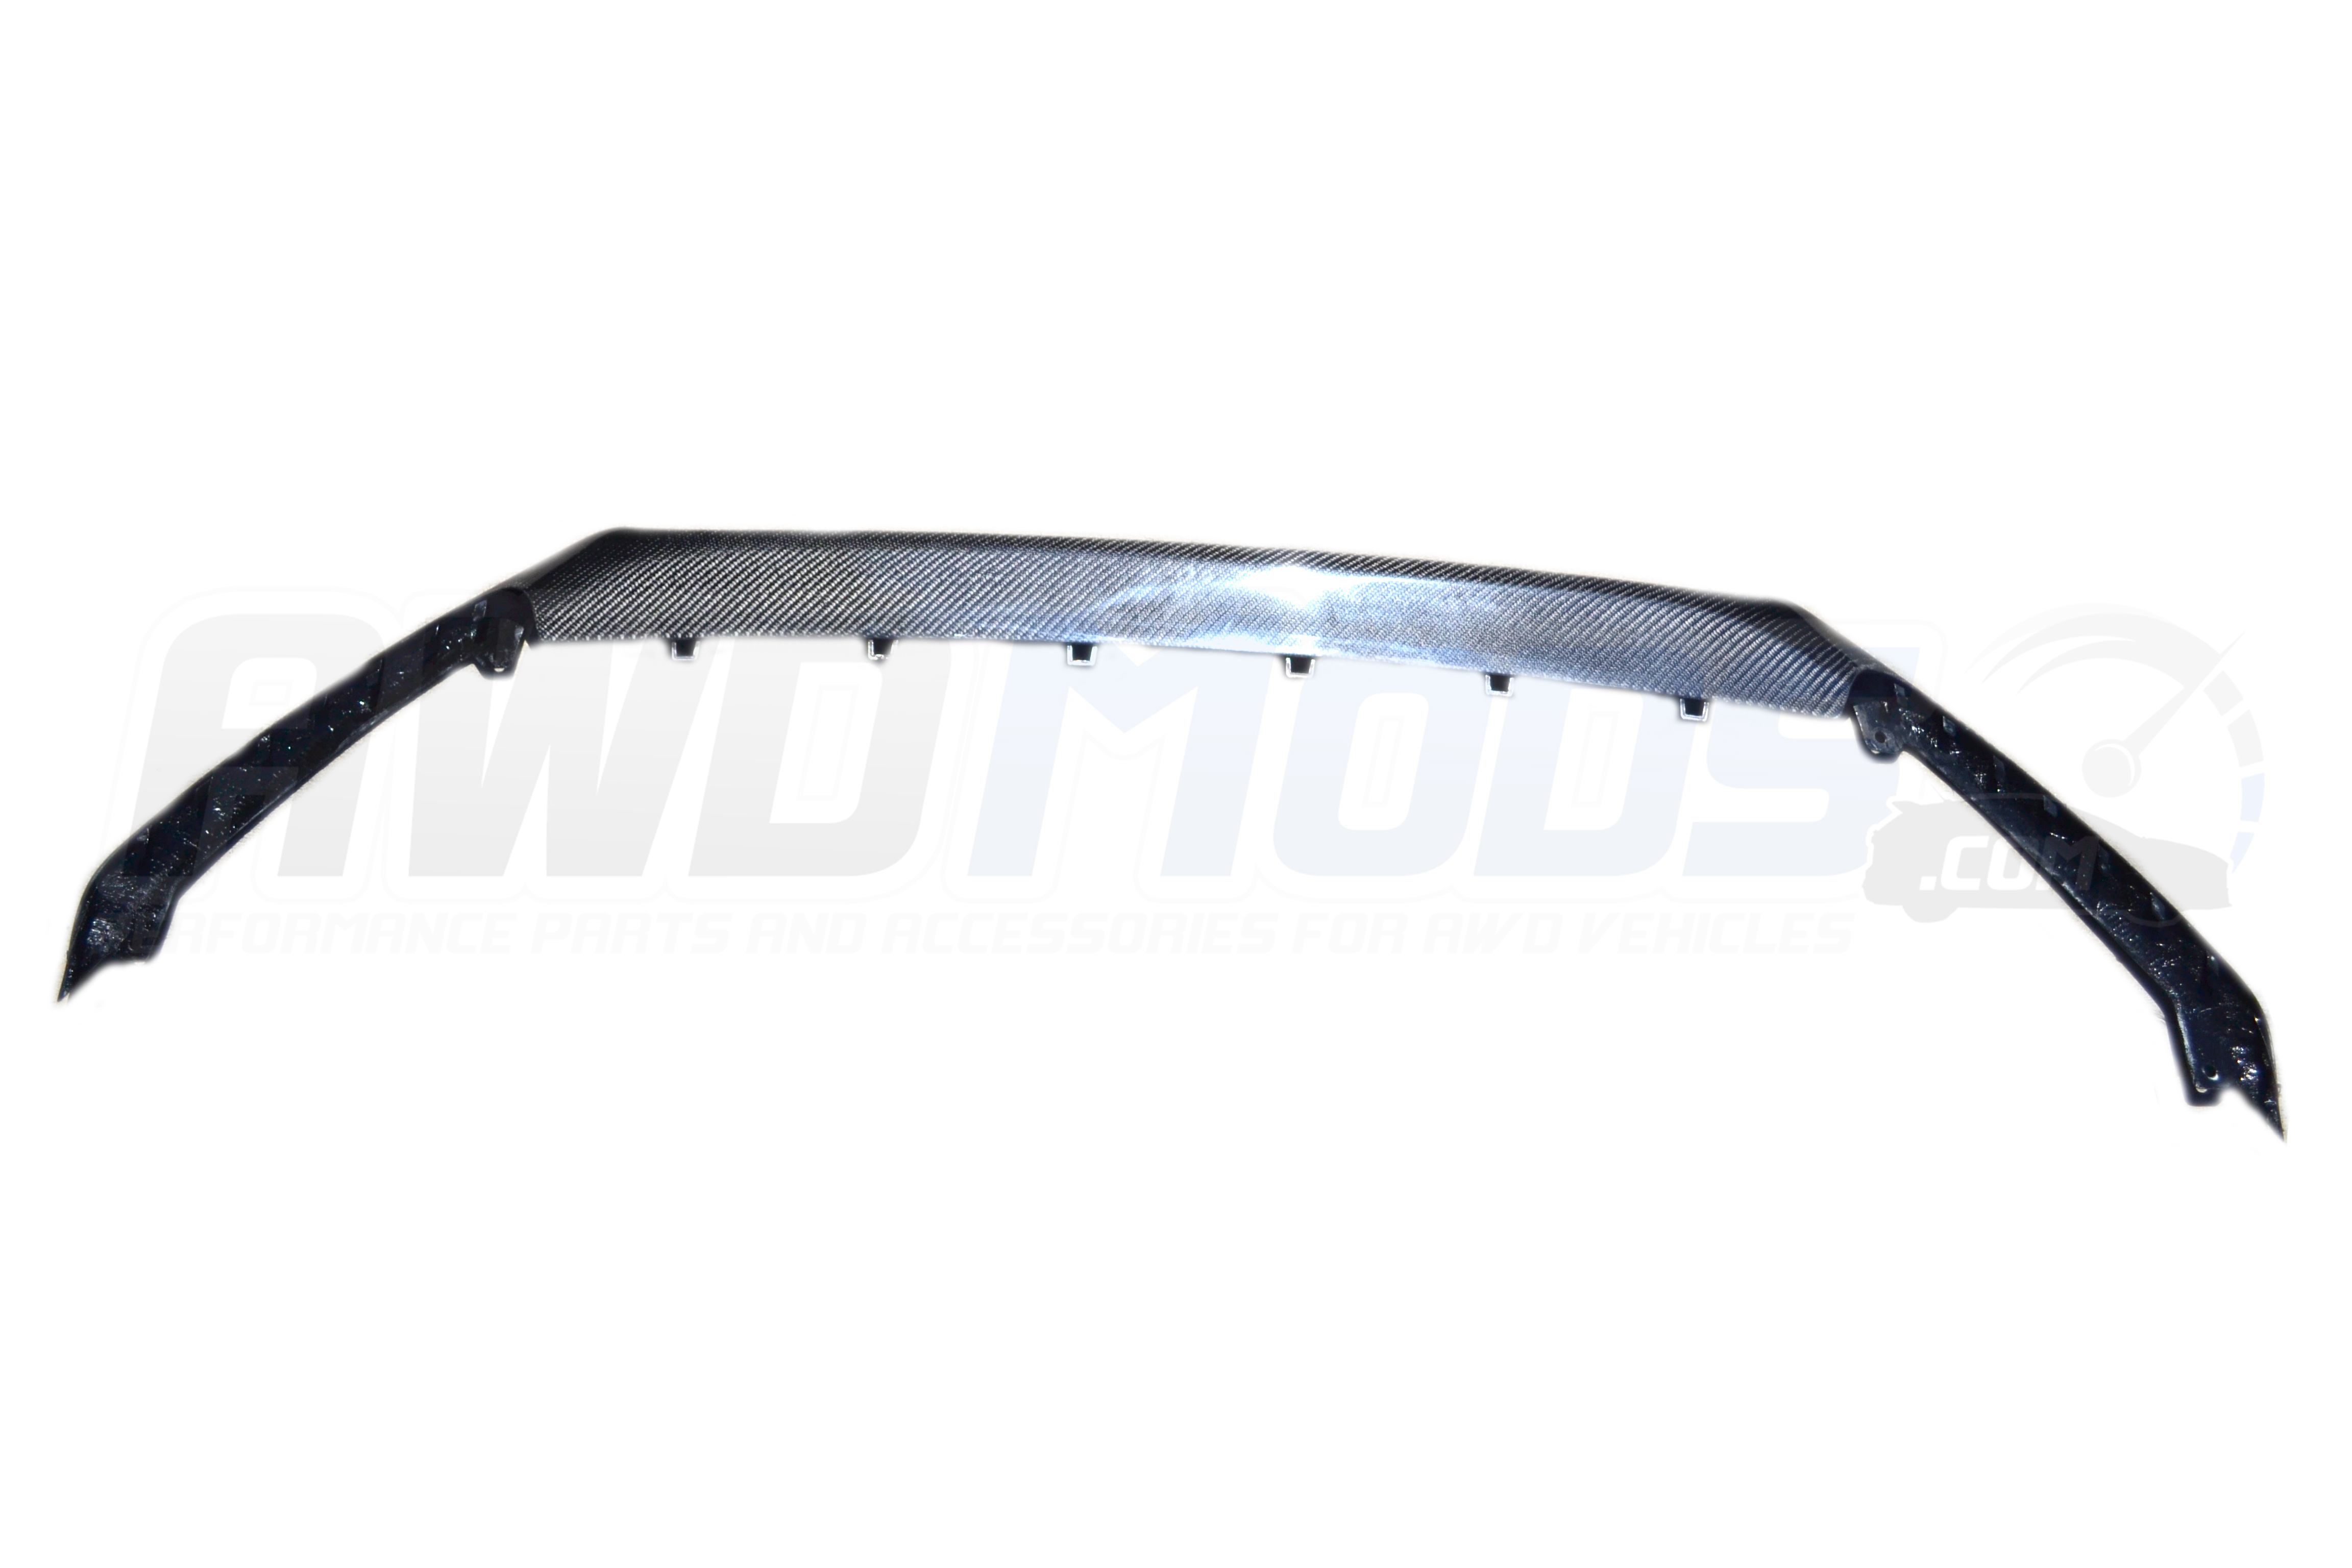 Ford Focus Rs Carbon Fiber Chin Spoiler From Cal Pony Cars Mustang Fuse Box Cover For The